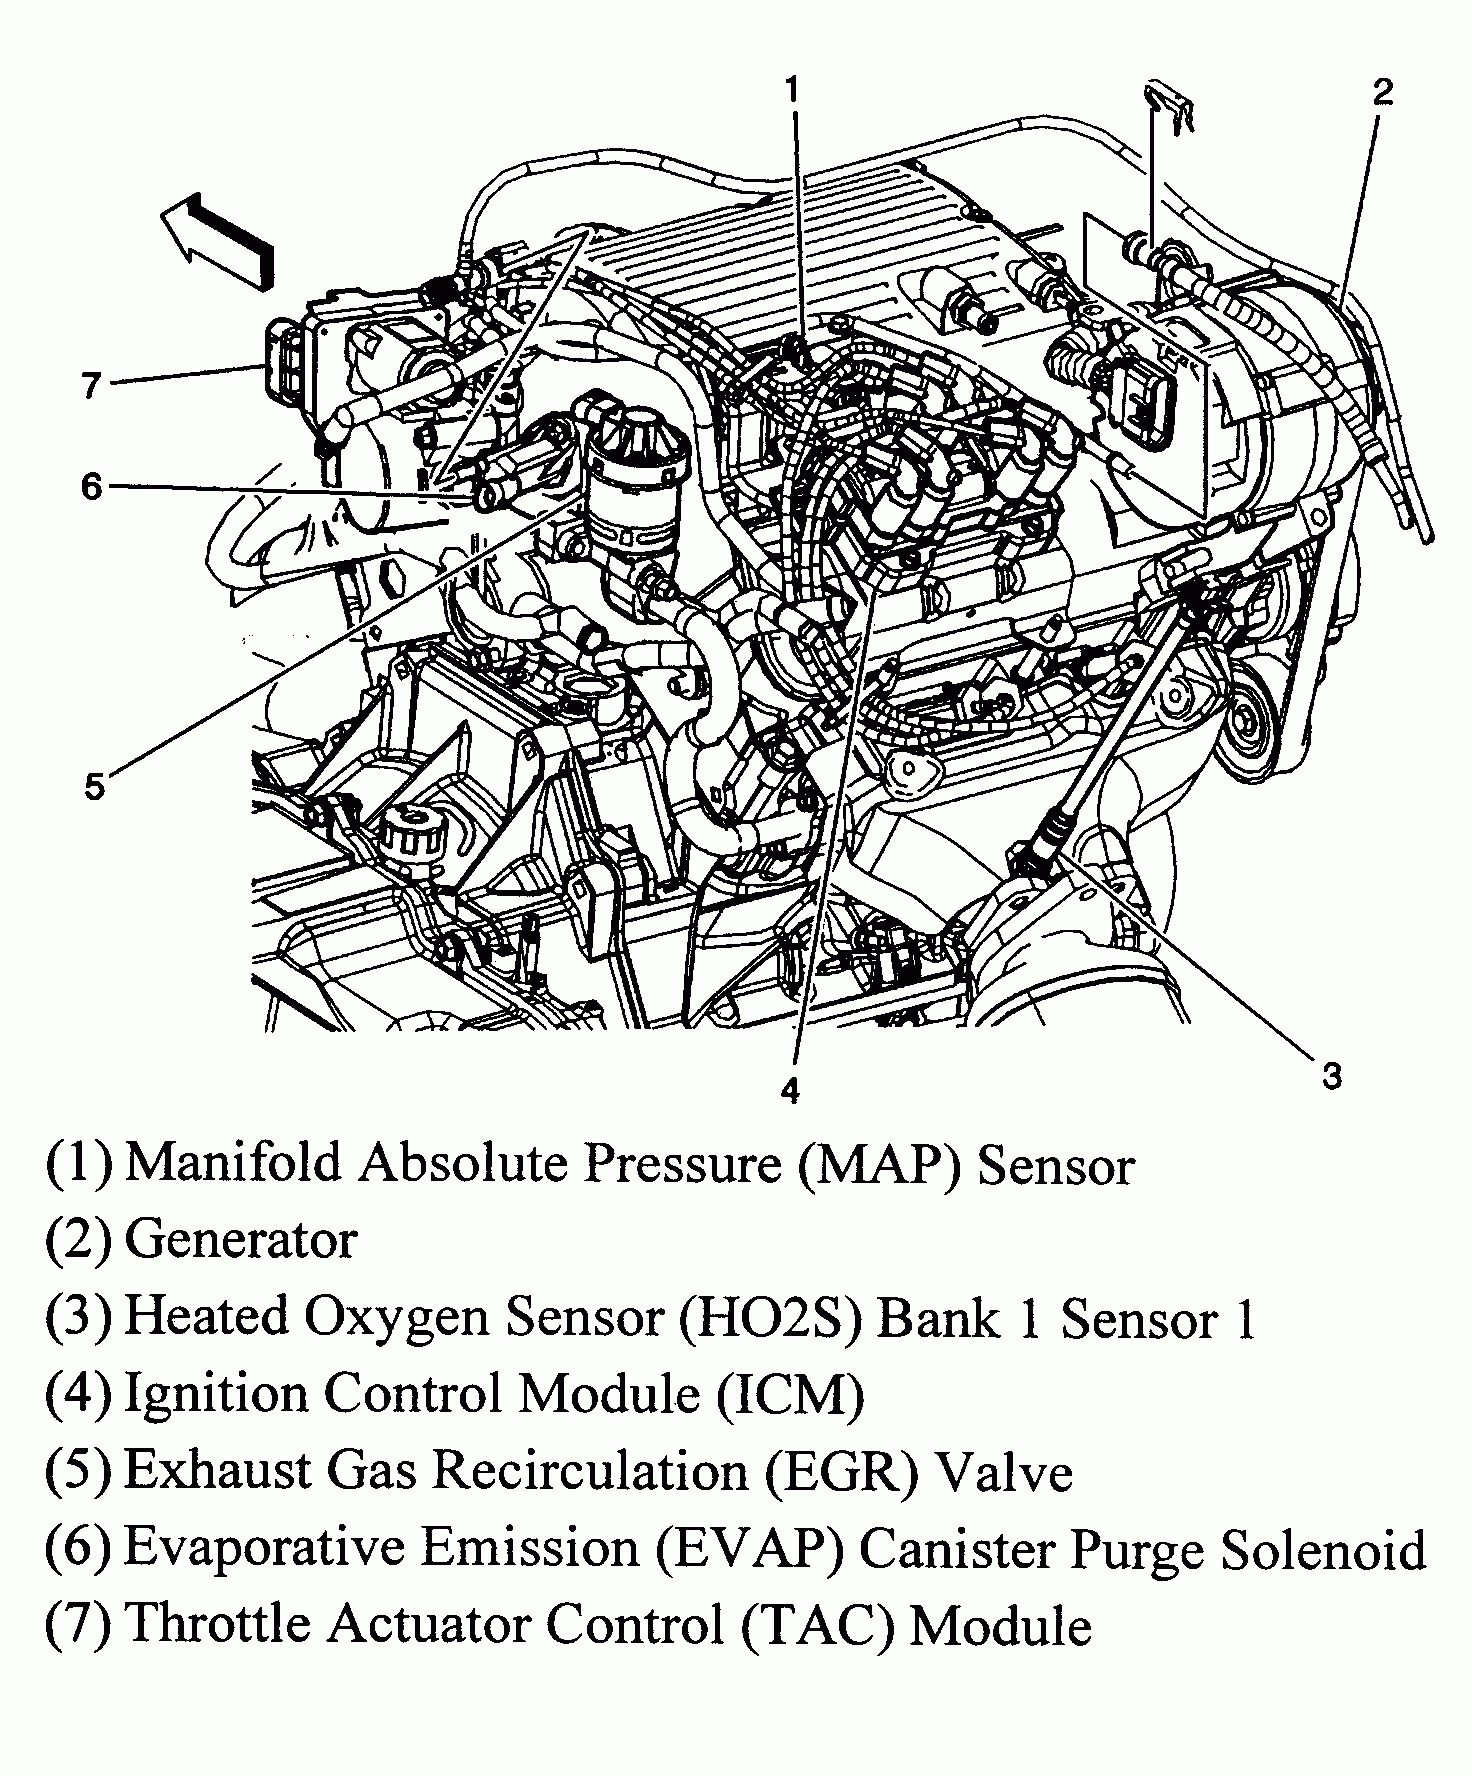 97 pontiac 3 4 engine diagram - wiring diagram system path-image-a -  path-image-a.ediliadesign.it  ediliadesign.it